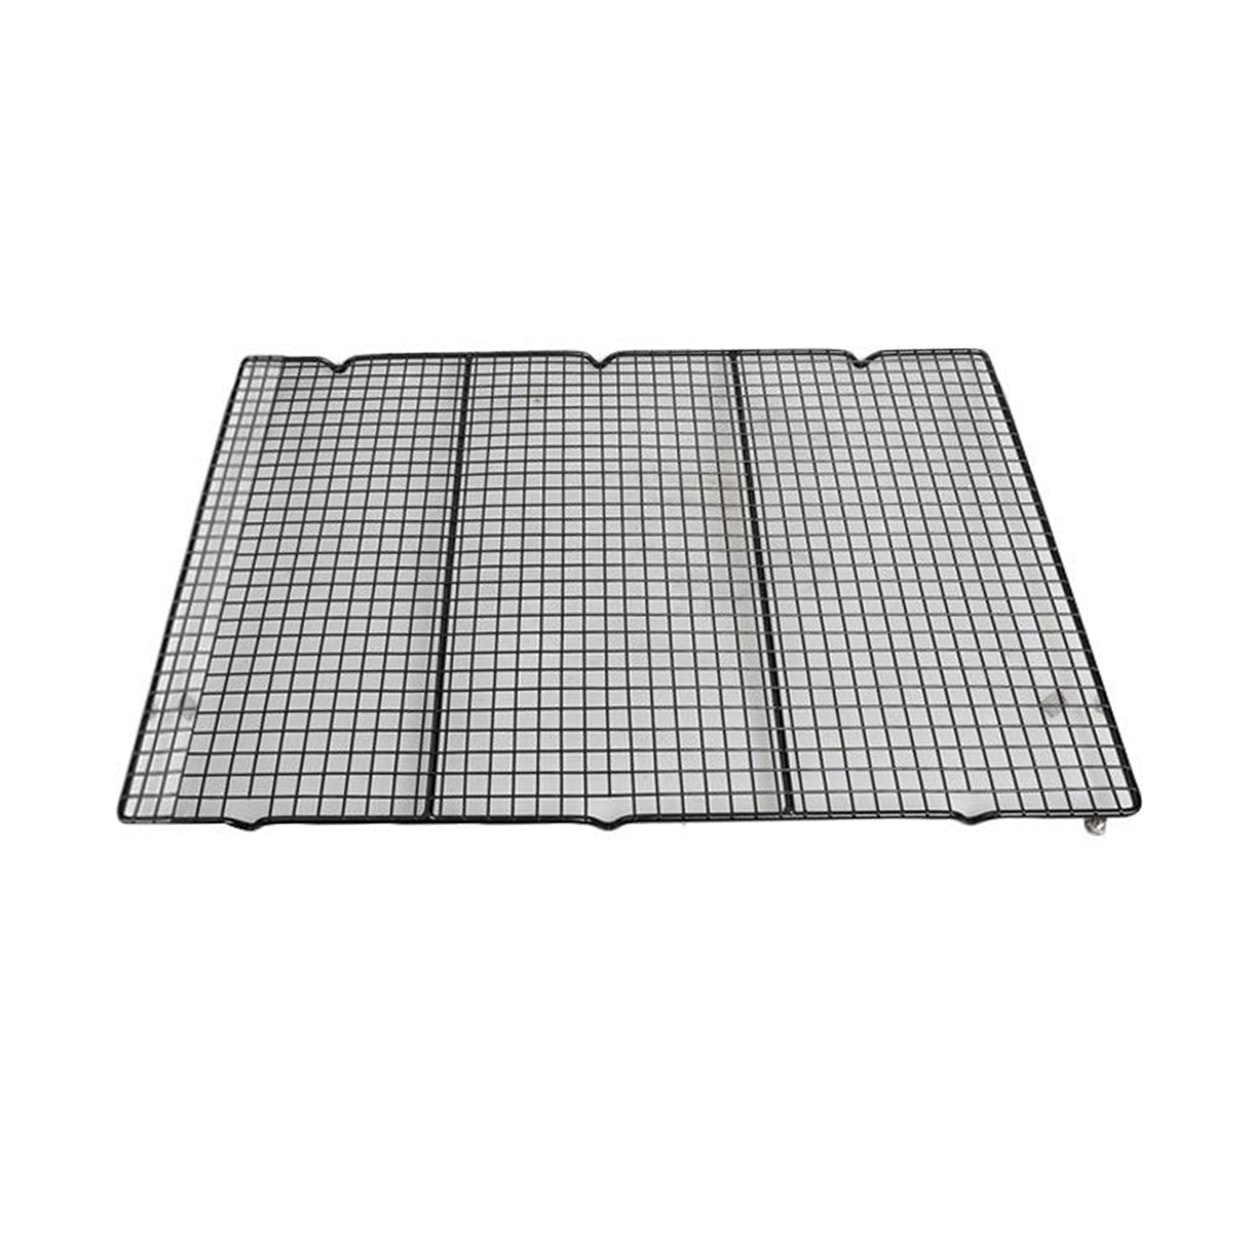 Cooks Habit Rectangular Cooling Grid (40 x 60 cm)